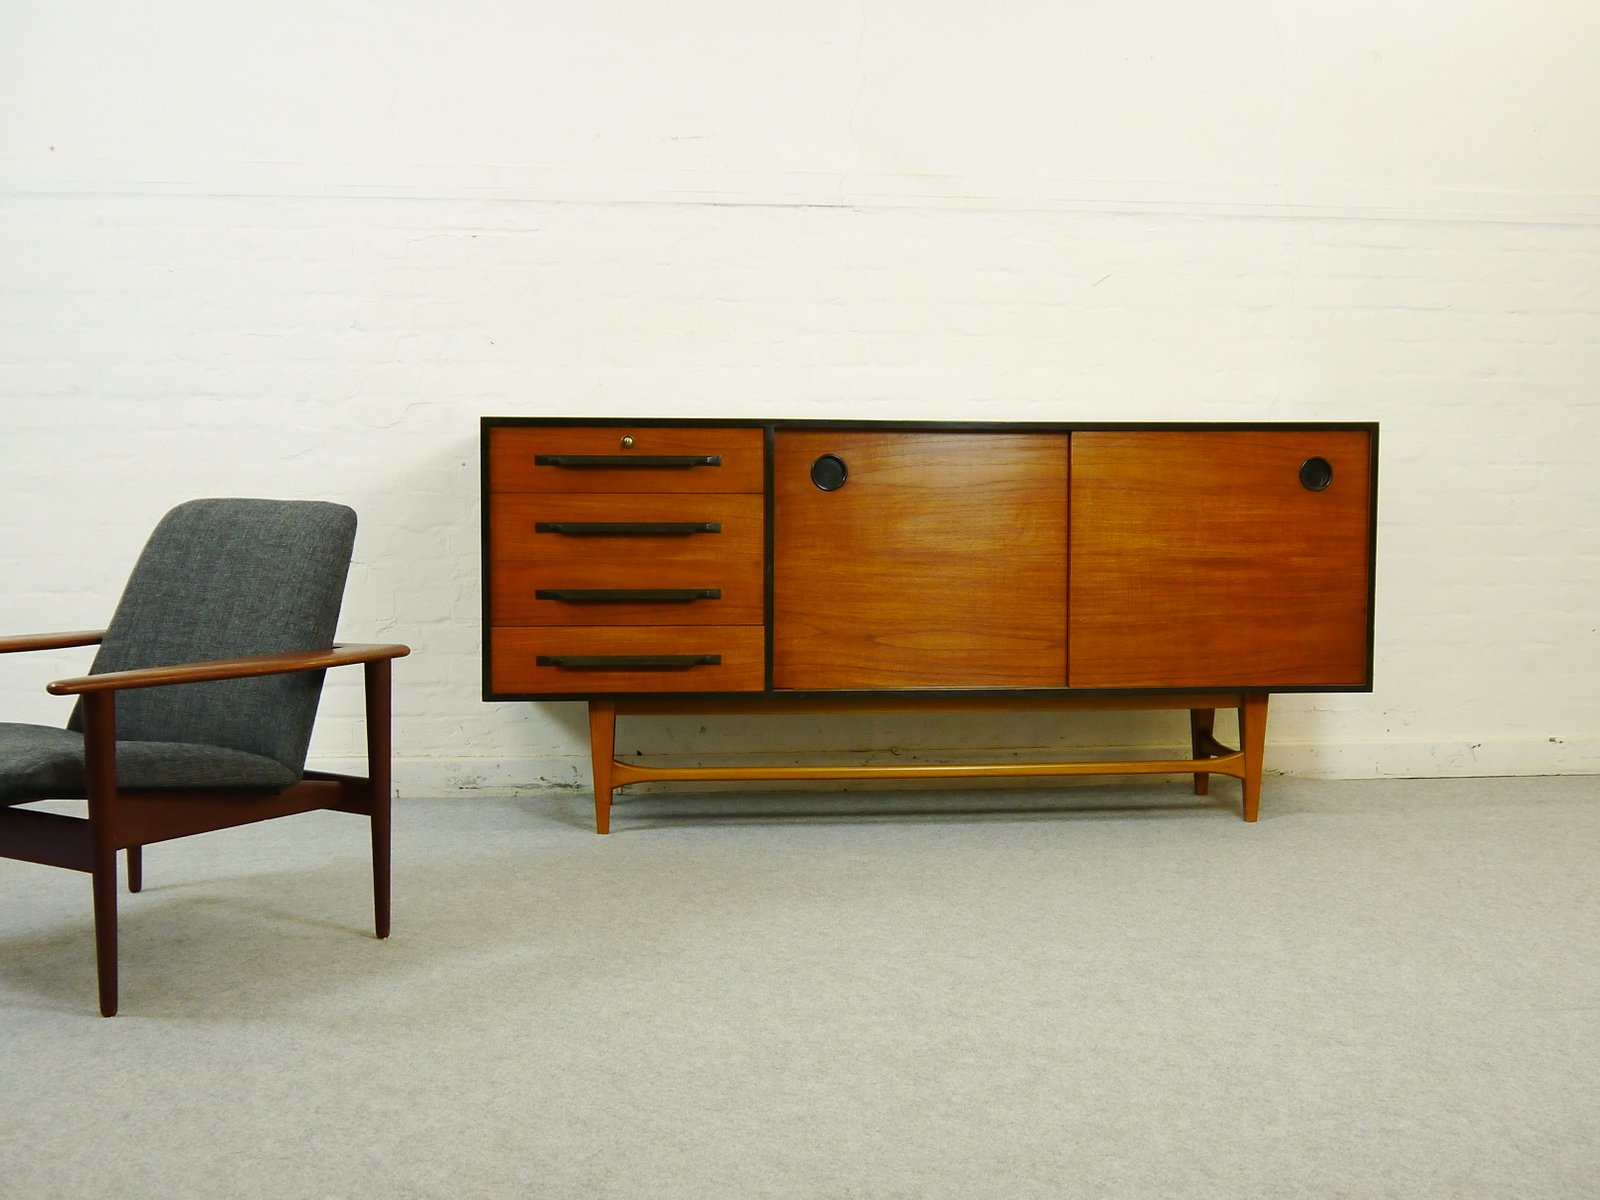 vintage teak anrichte mit vier schubladen bei pamono kaufen. Black Bedroom Furniture Sets. Home Design Ideas